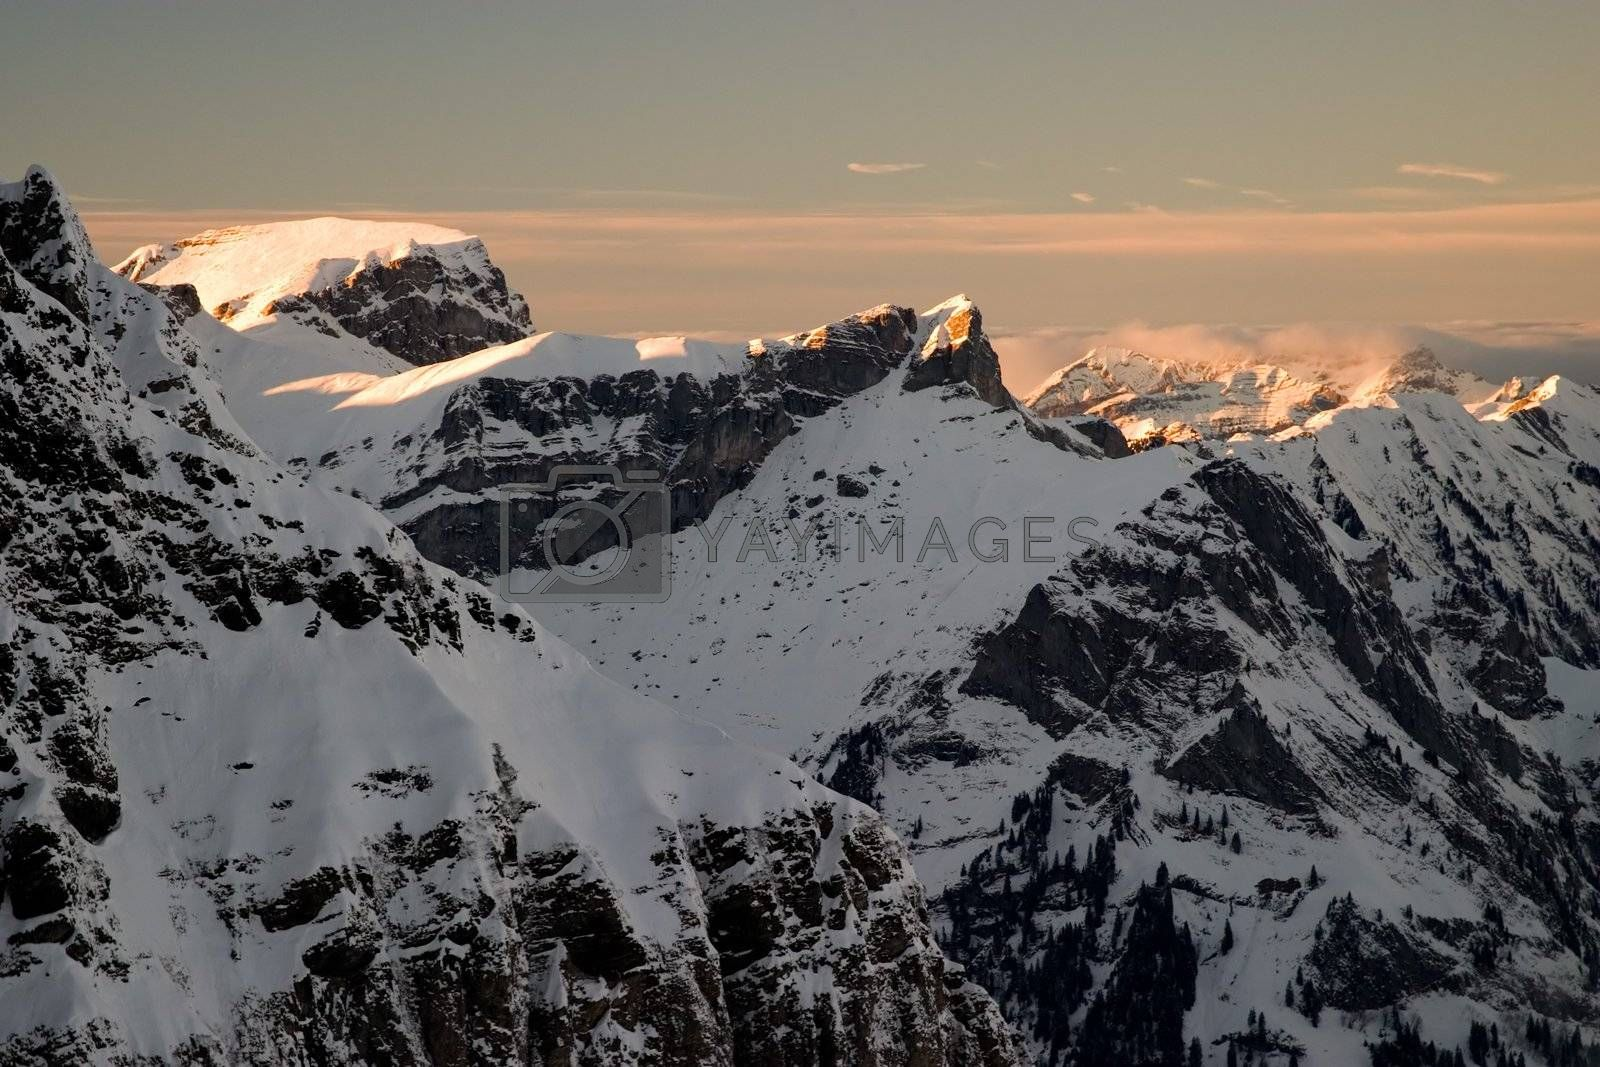 Sunset in the Swiss Alps